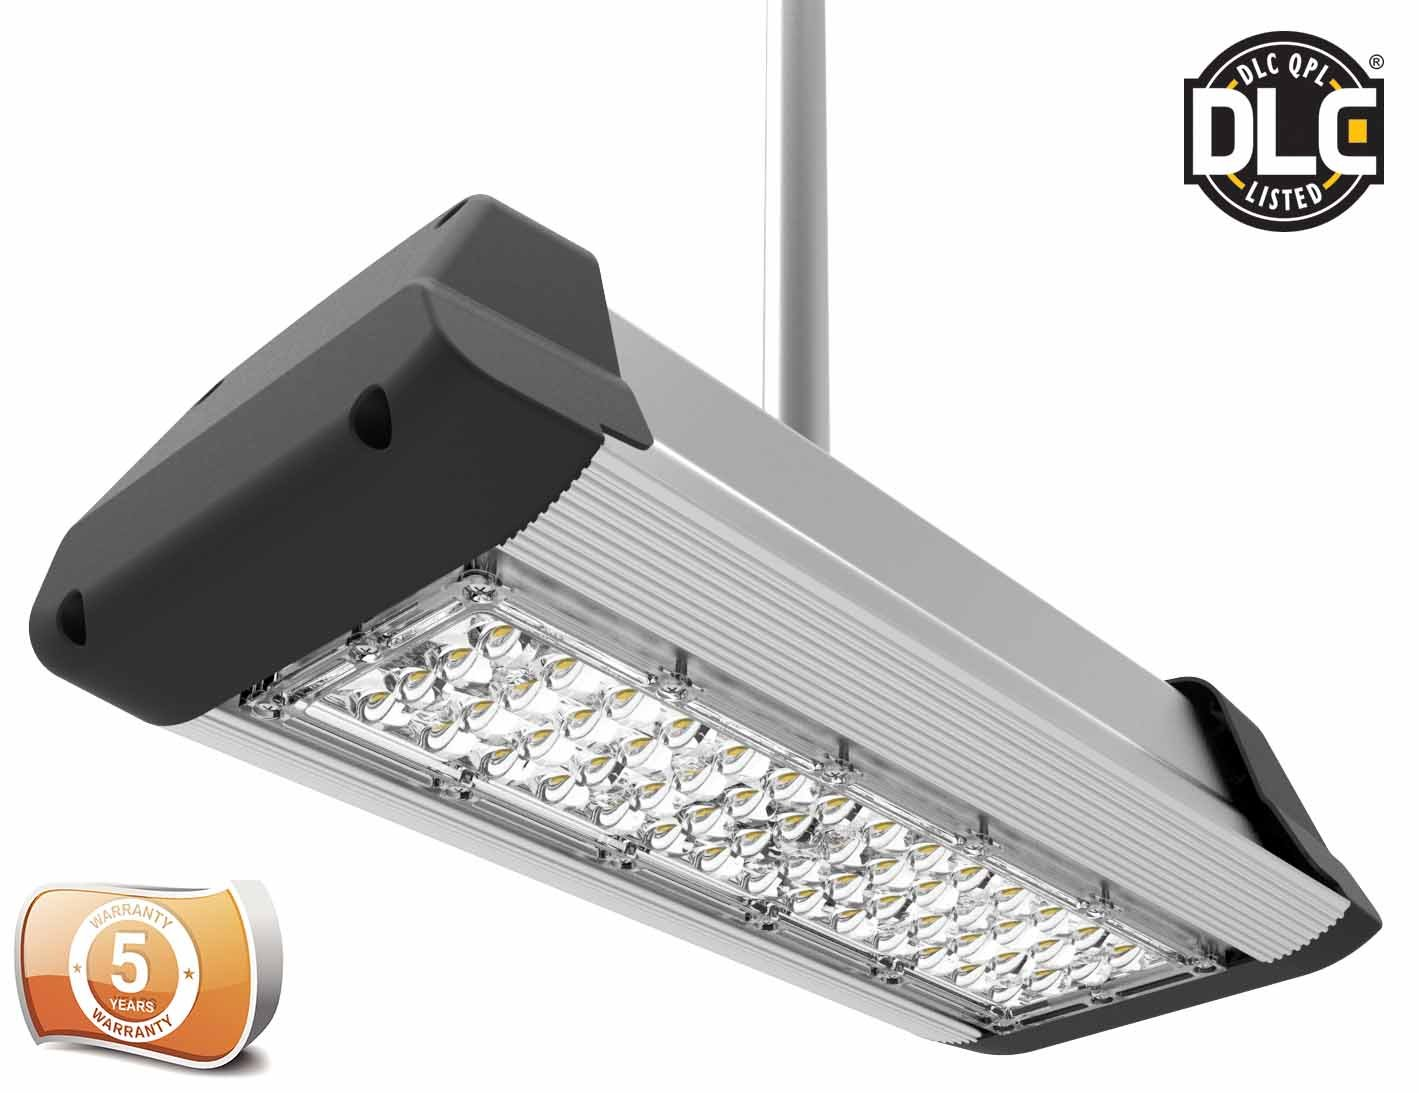 DLC Listed LEDrock Topaz Series 50 Watt LED Parking Garage Light, 5000K Daylight White, 120V-277V, Comparable to 175-250W MH, 5500 Lumens, Parking Garage Light, Warranty Based in Denver, CO, USA by LEDrock